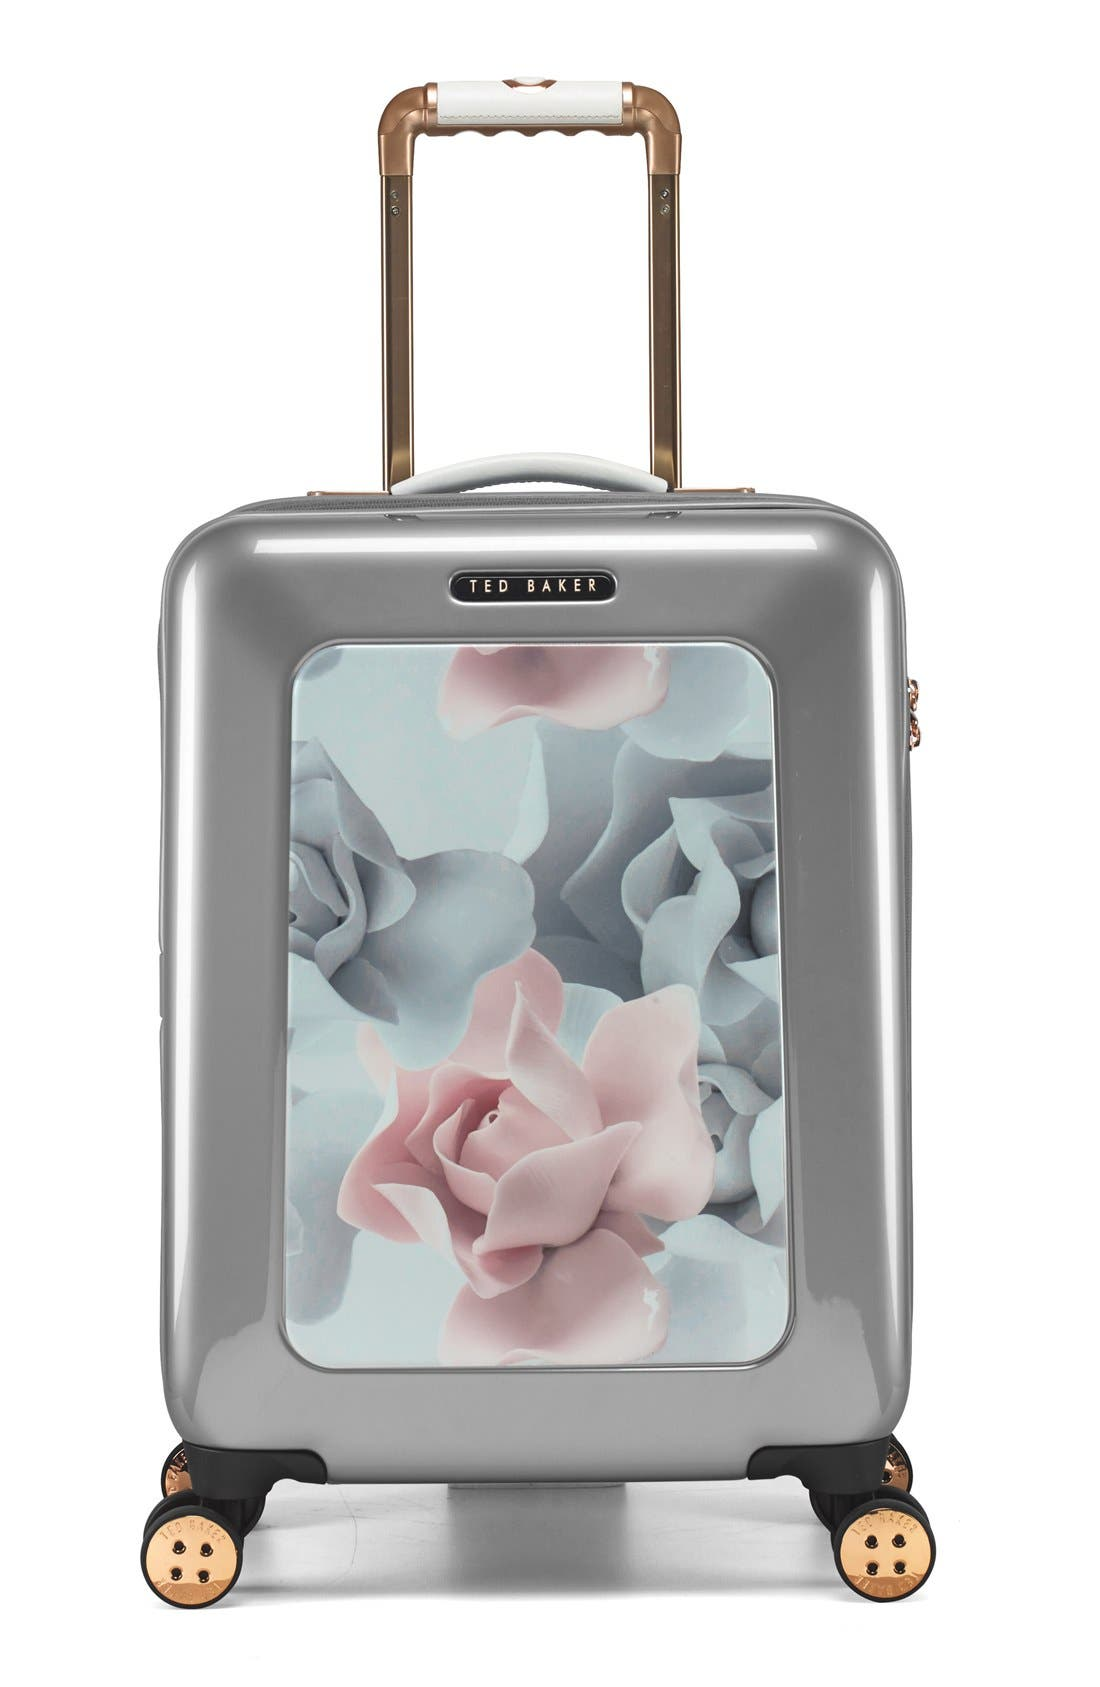 Alternate Image 1 Selected - Ted Baker London 'Small Porcelain Rose' Four Wheel Suitcase (22 Inch)